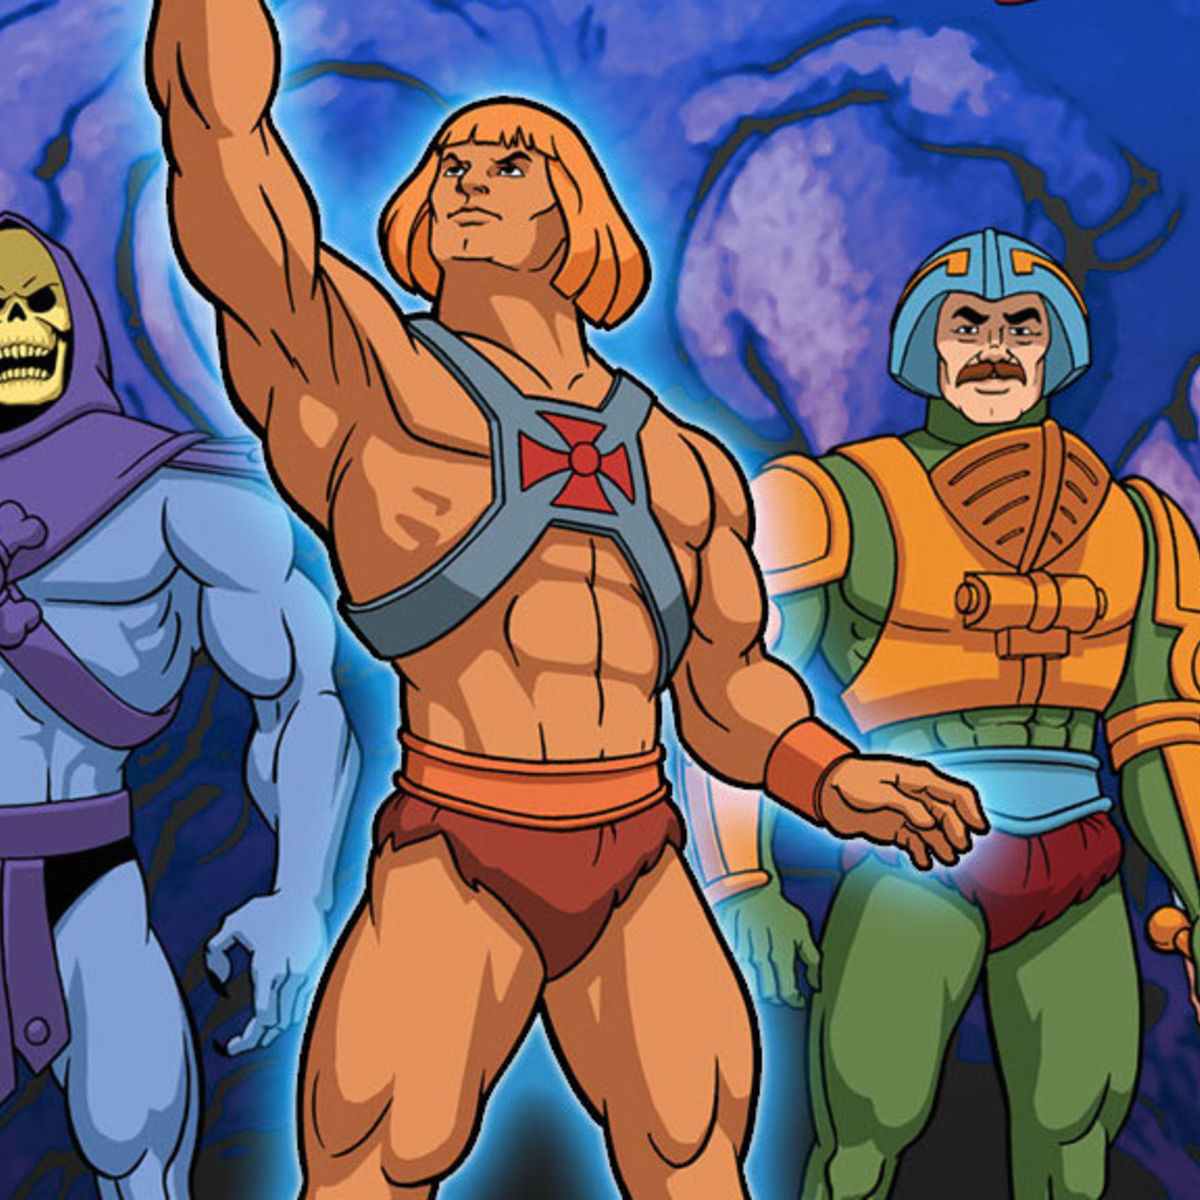 he-man_and_the_masters_of_177_1280.jpg